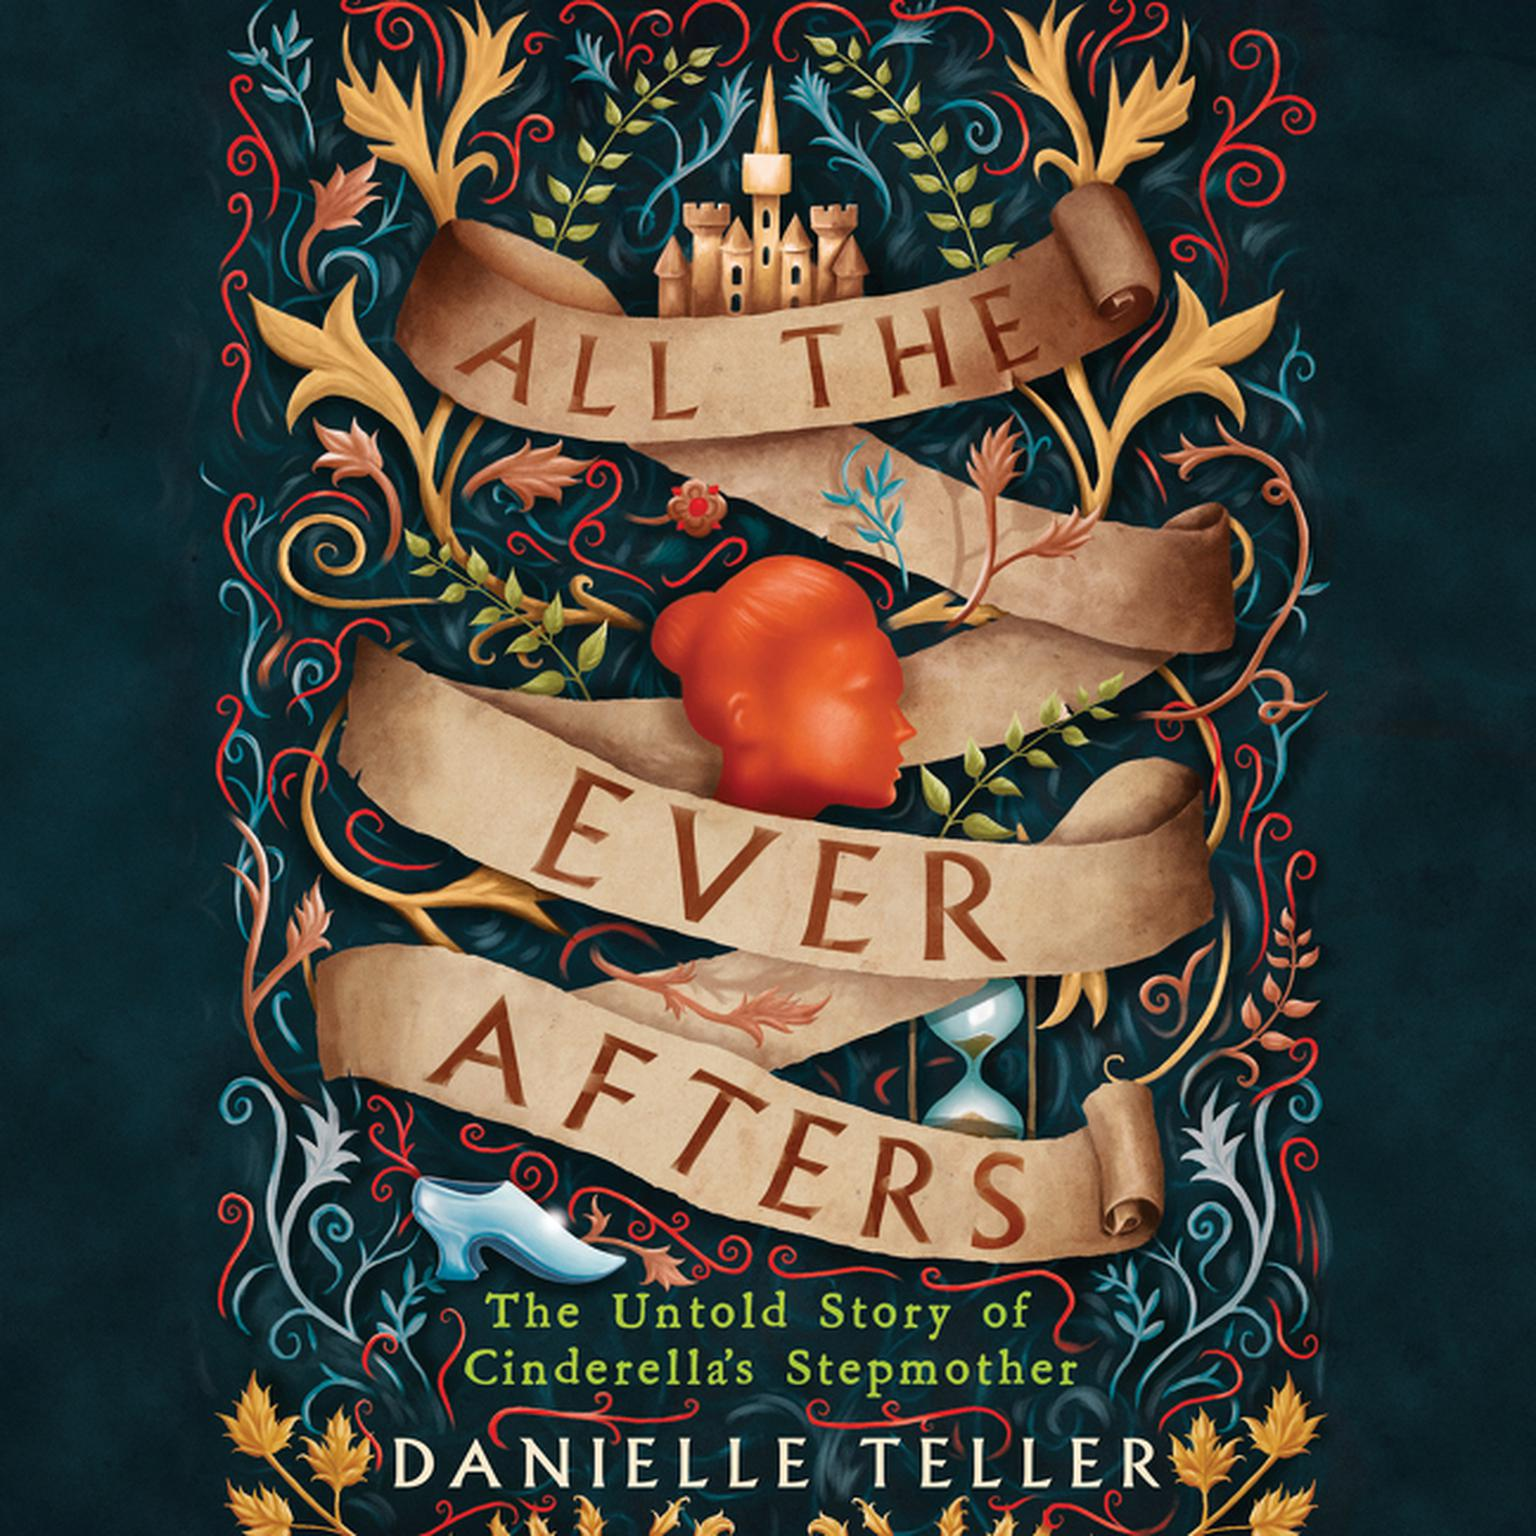 Printable All the Ever Afters: The Untold Story of Cinderella's Stepmother Audiobook Cover Art